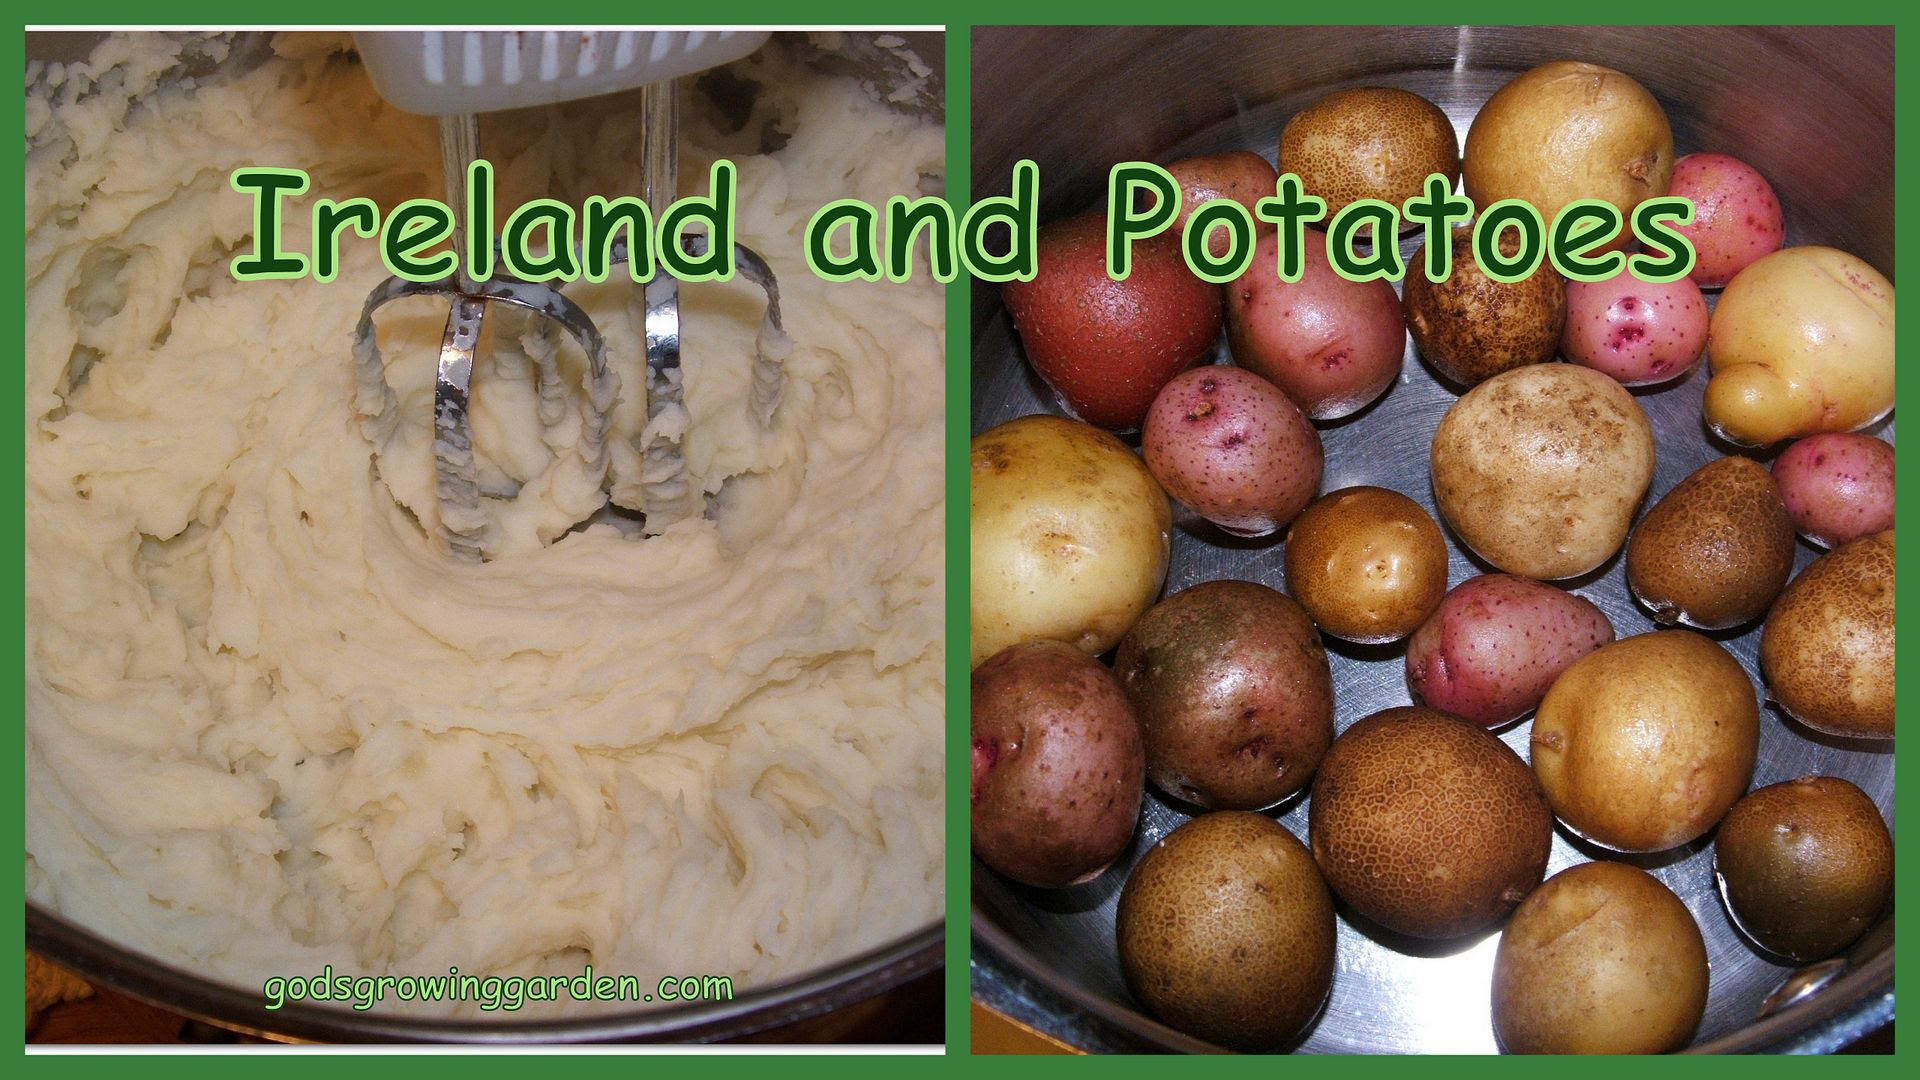 Ireland & Potatoes by Angie Ouellette-Tower for godsgrowinggarden.com photo 2013-10-13_zps707a1500.jpg